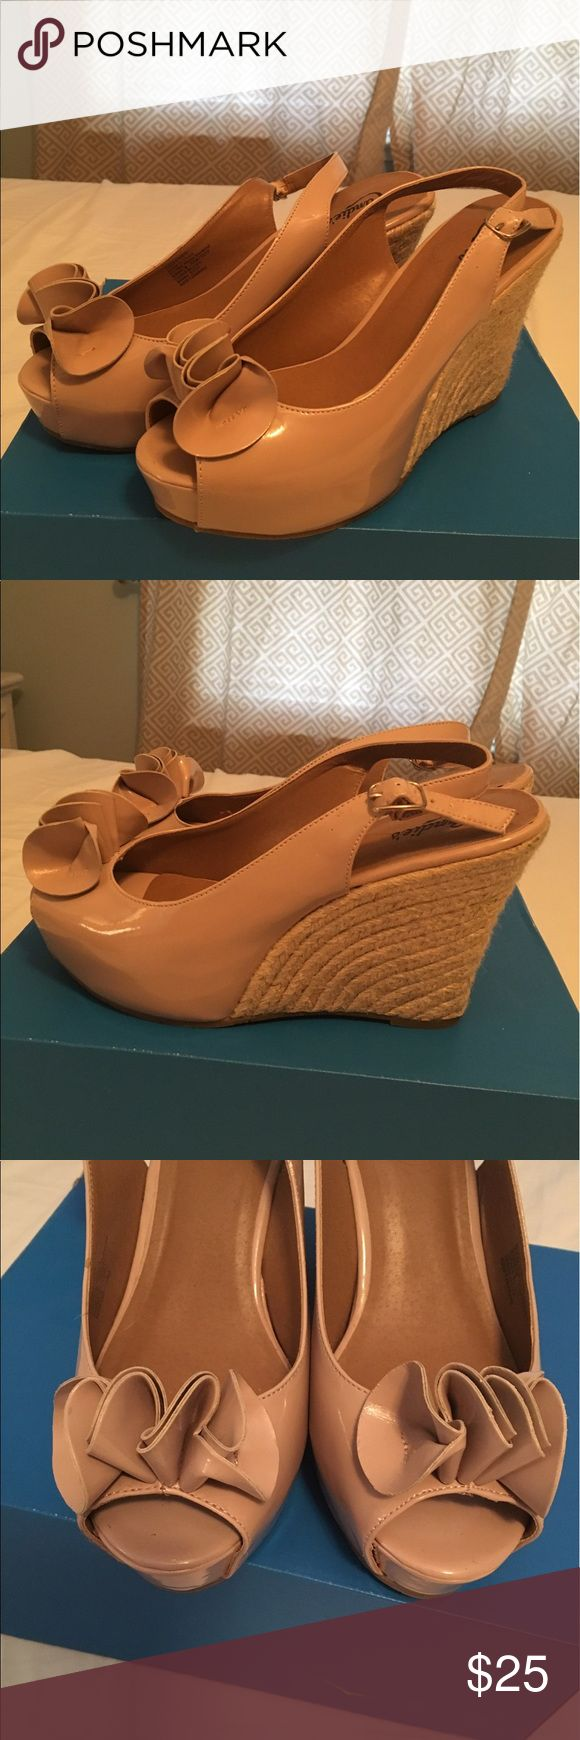 Nude espadrilles Platform nude patent espadrilles. Peep toes and sling back! So cute! Great condition worn 1x Candie's Shoes Espadrilles